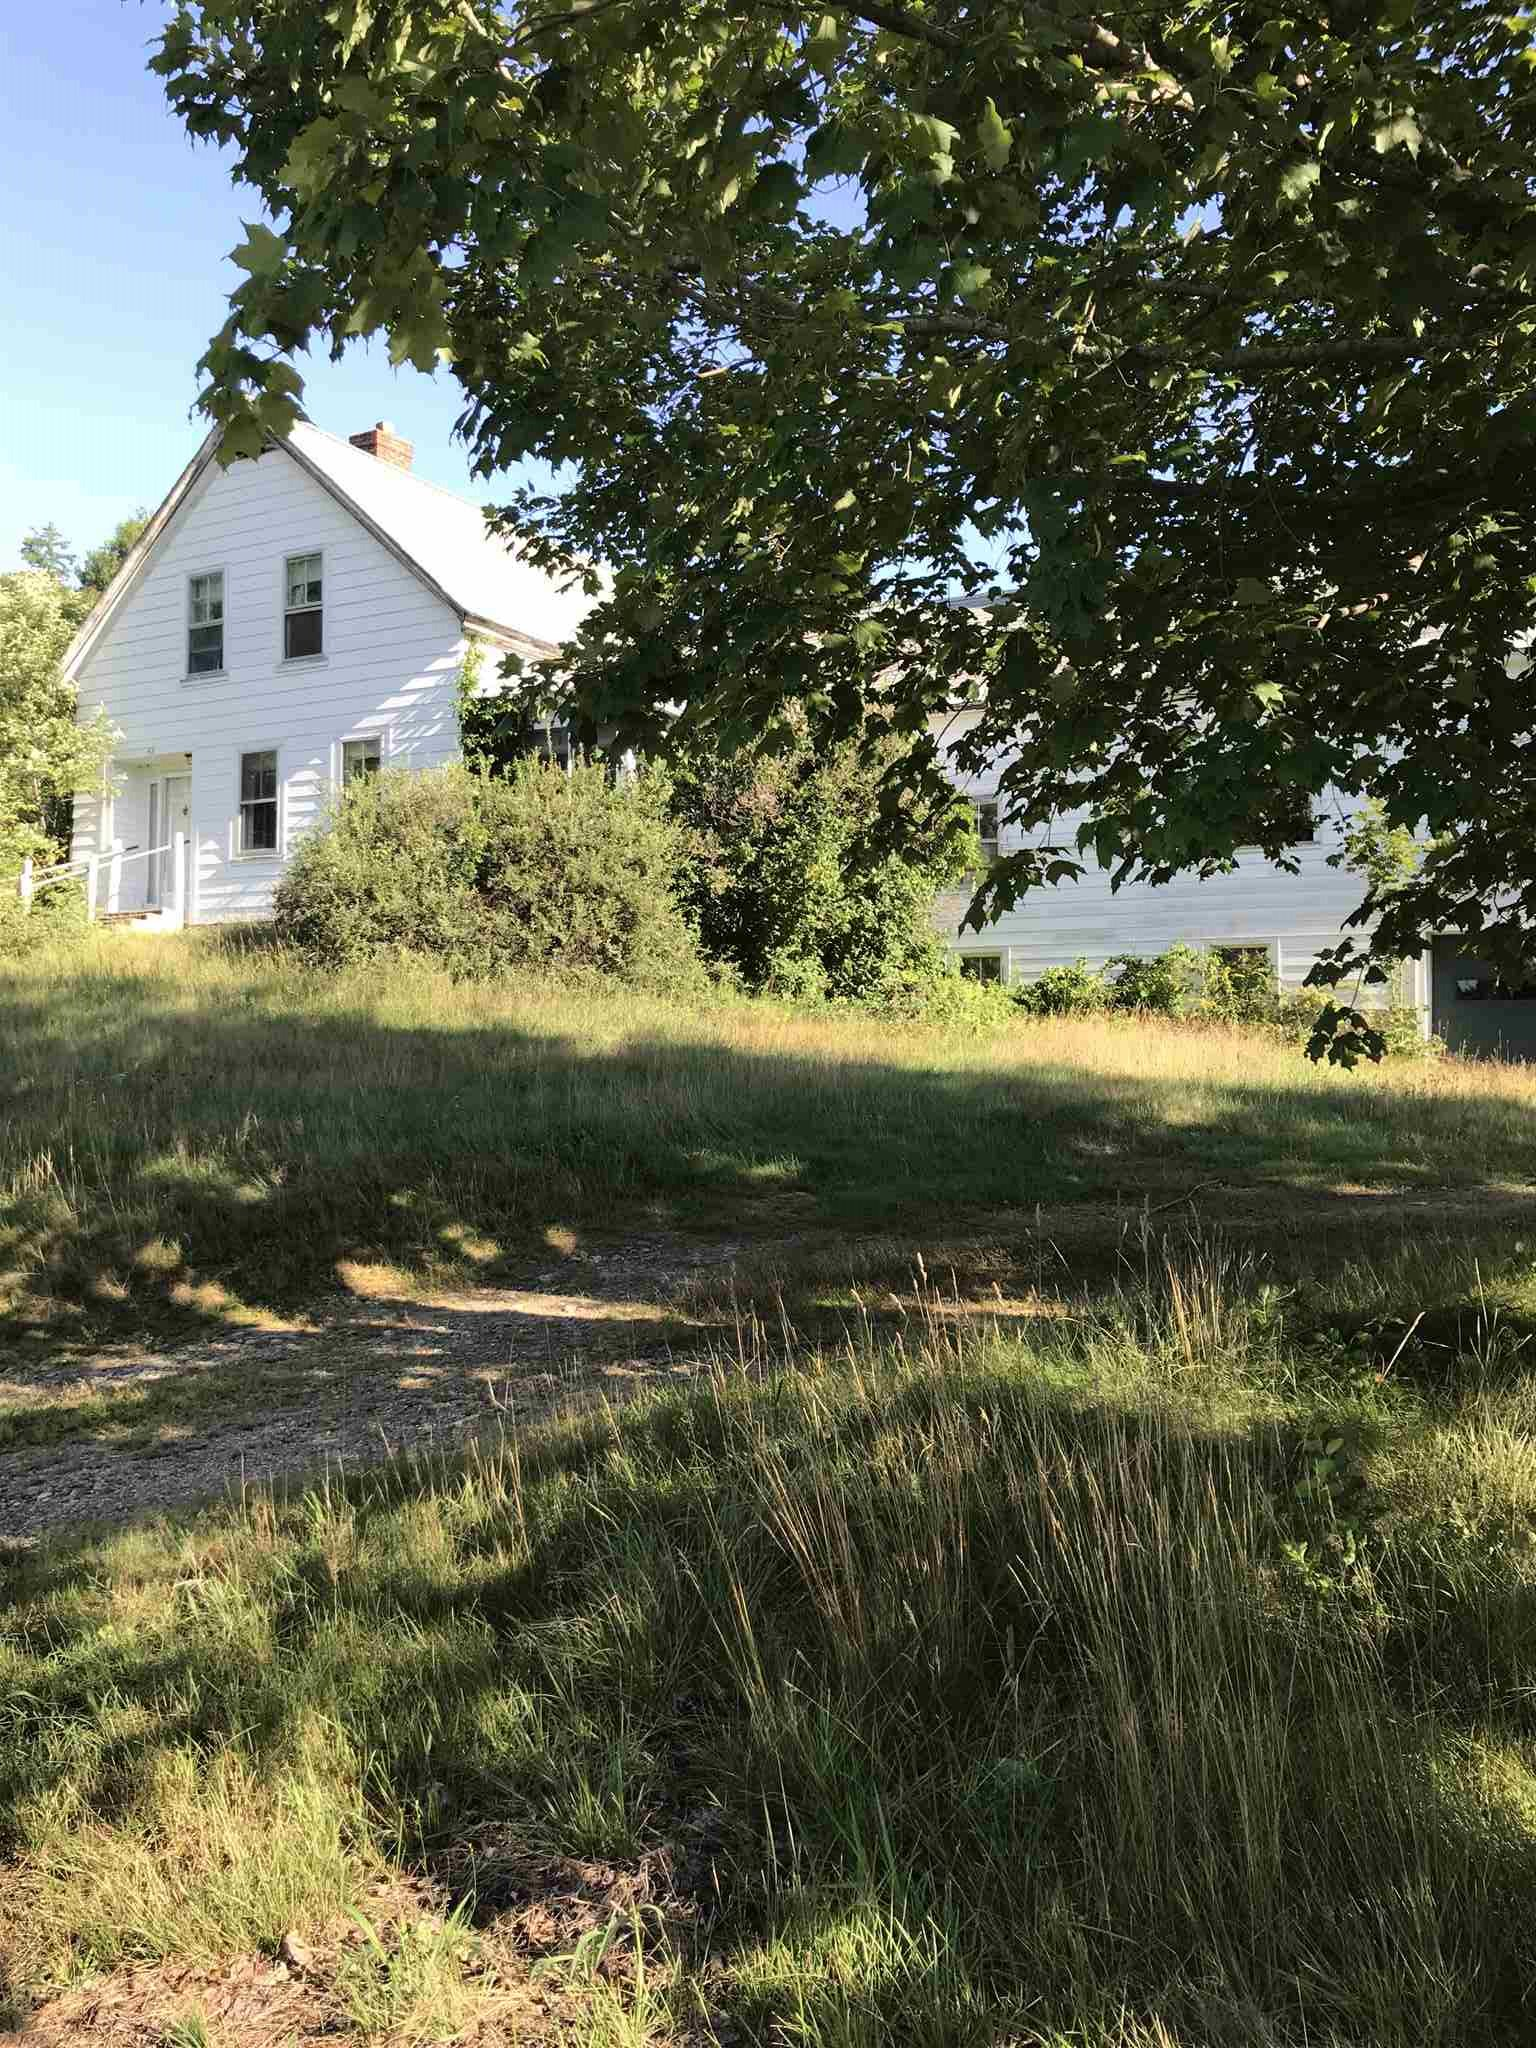 MLS 4787239: 42 old Amherst Road, Mont Vernon NH